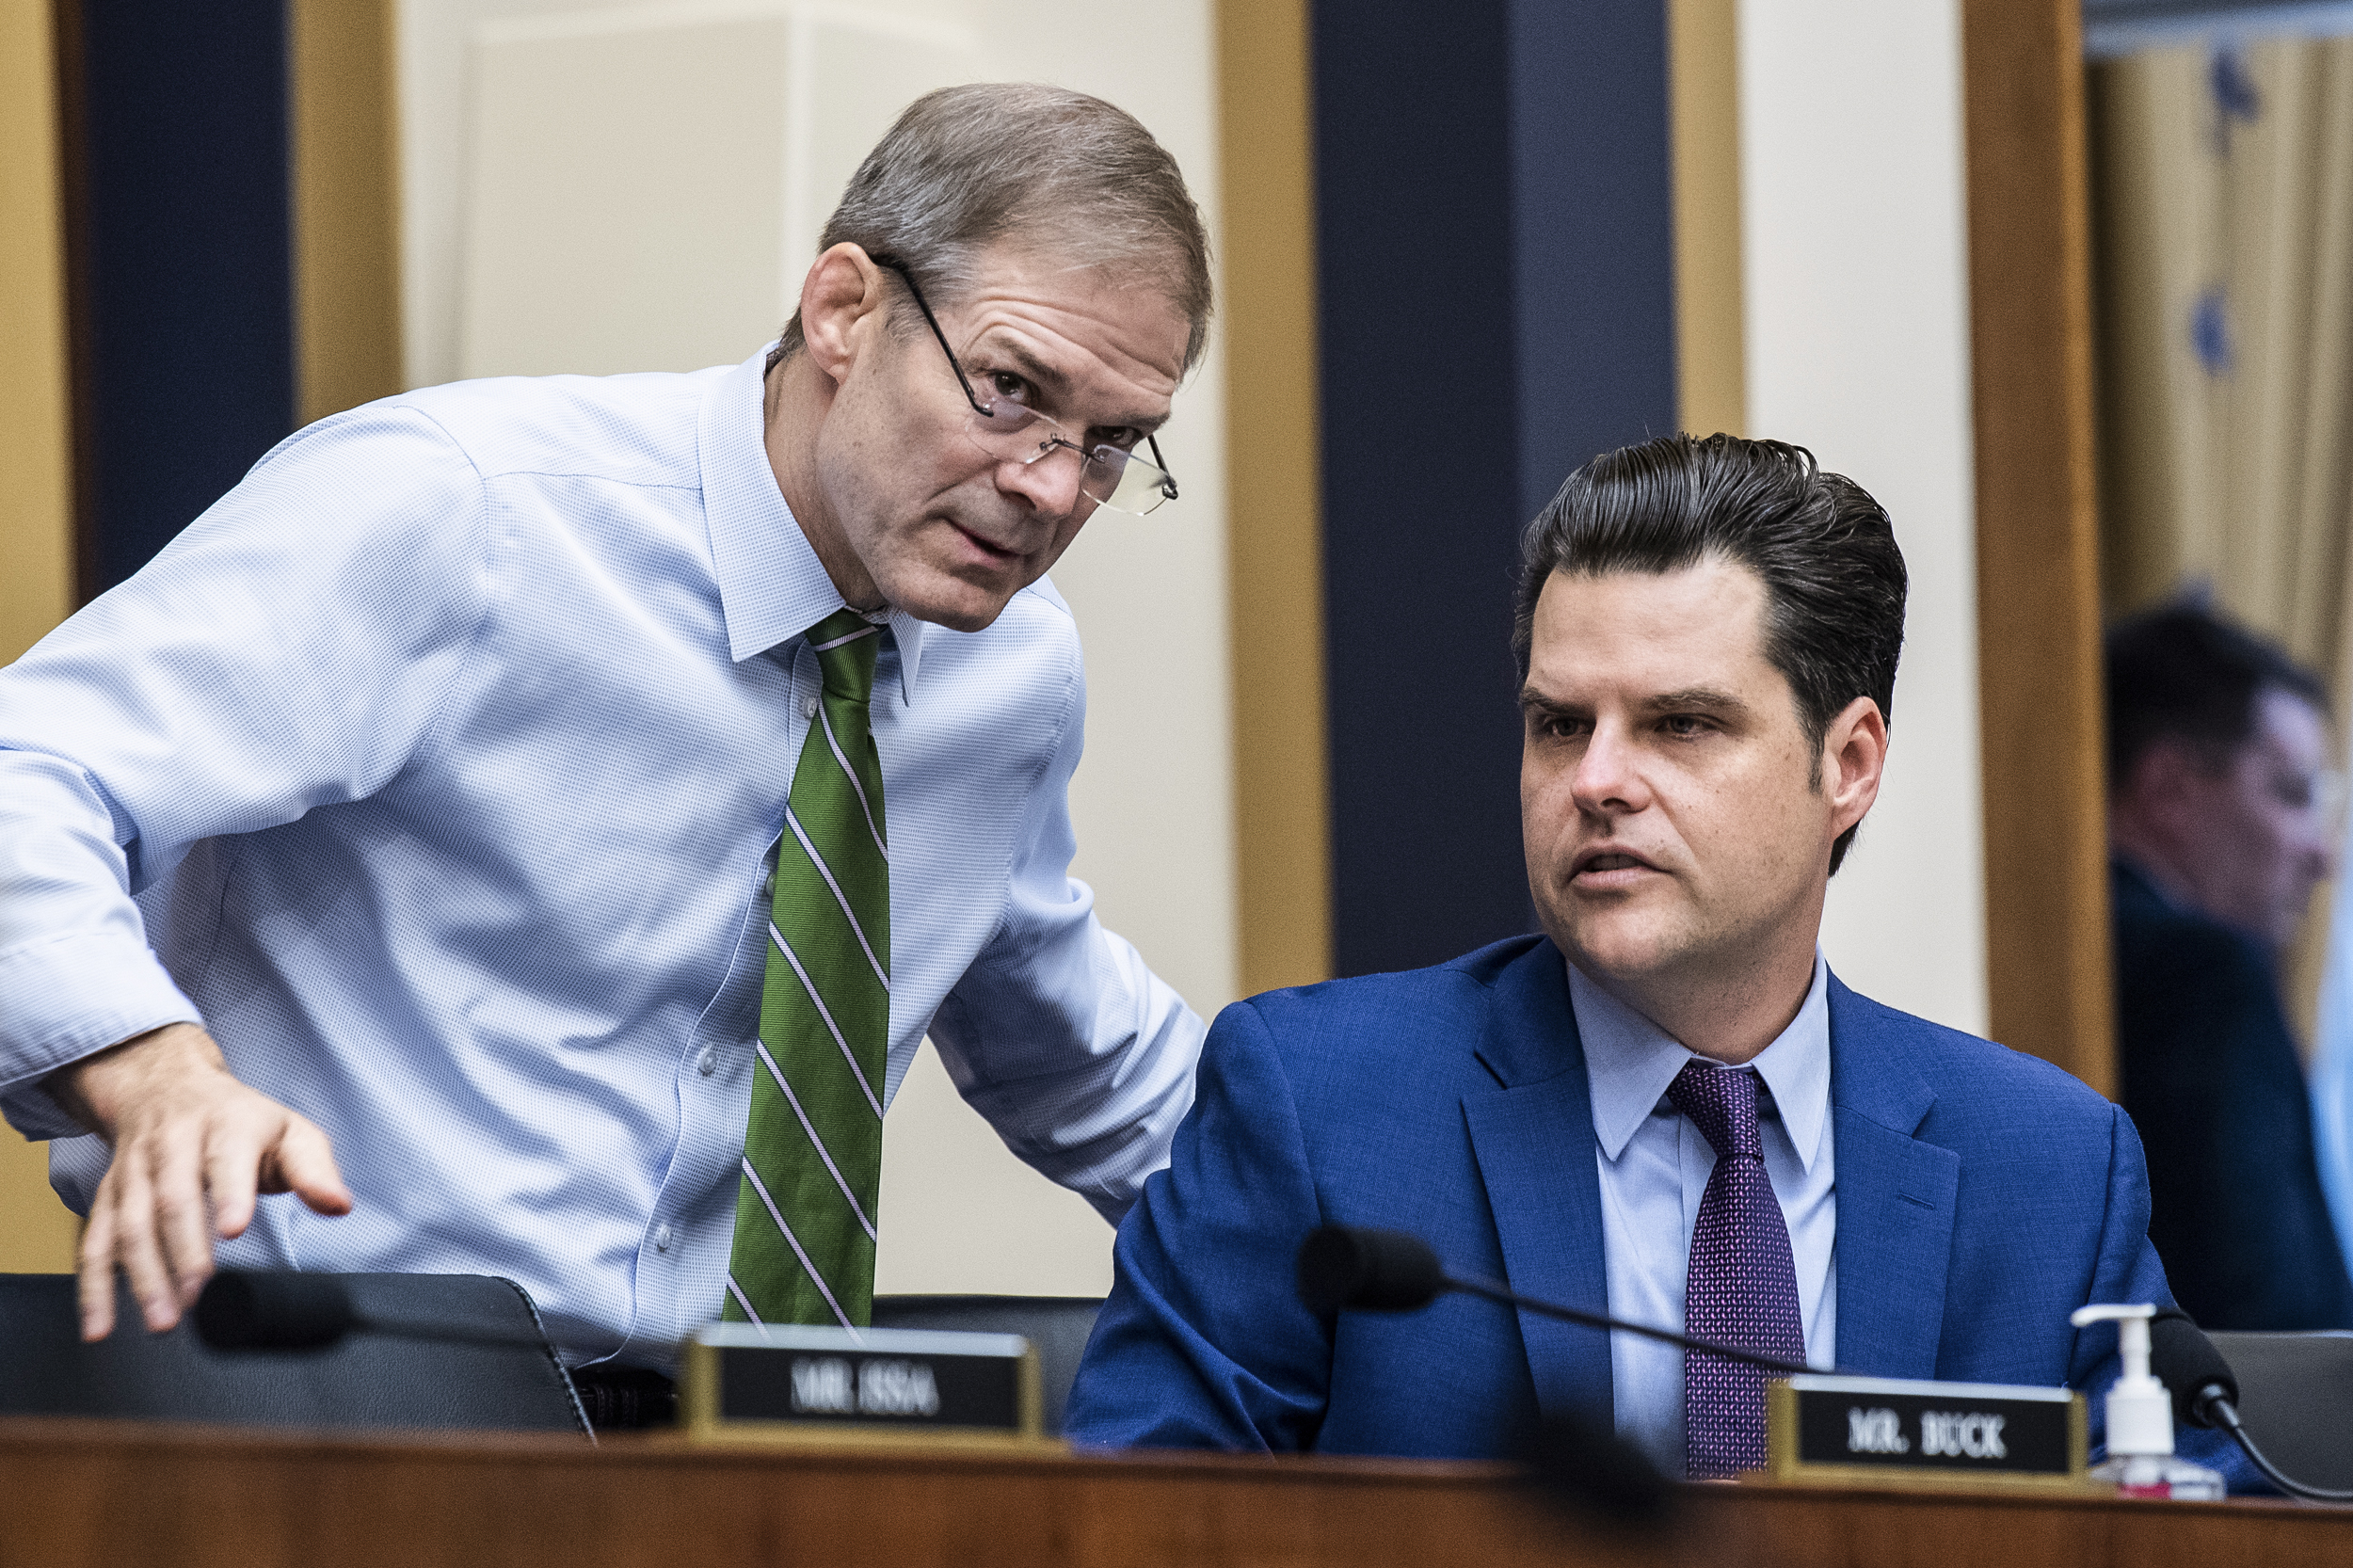 Jan. 6 committee to ask phone companies for Republican lawmakers' records